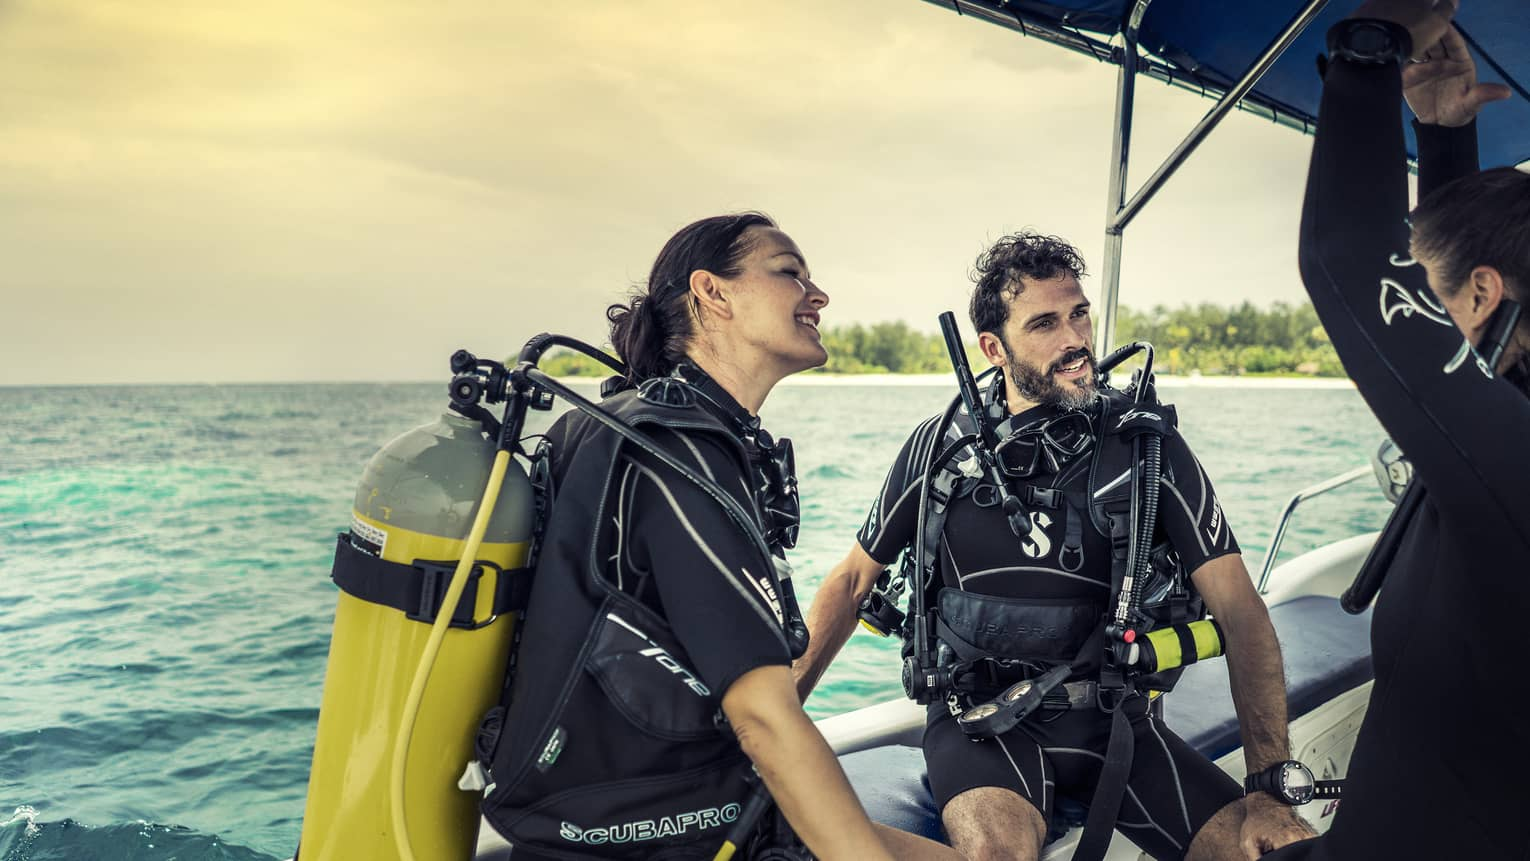 Three people in scuba gear on a boat.